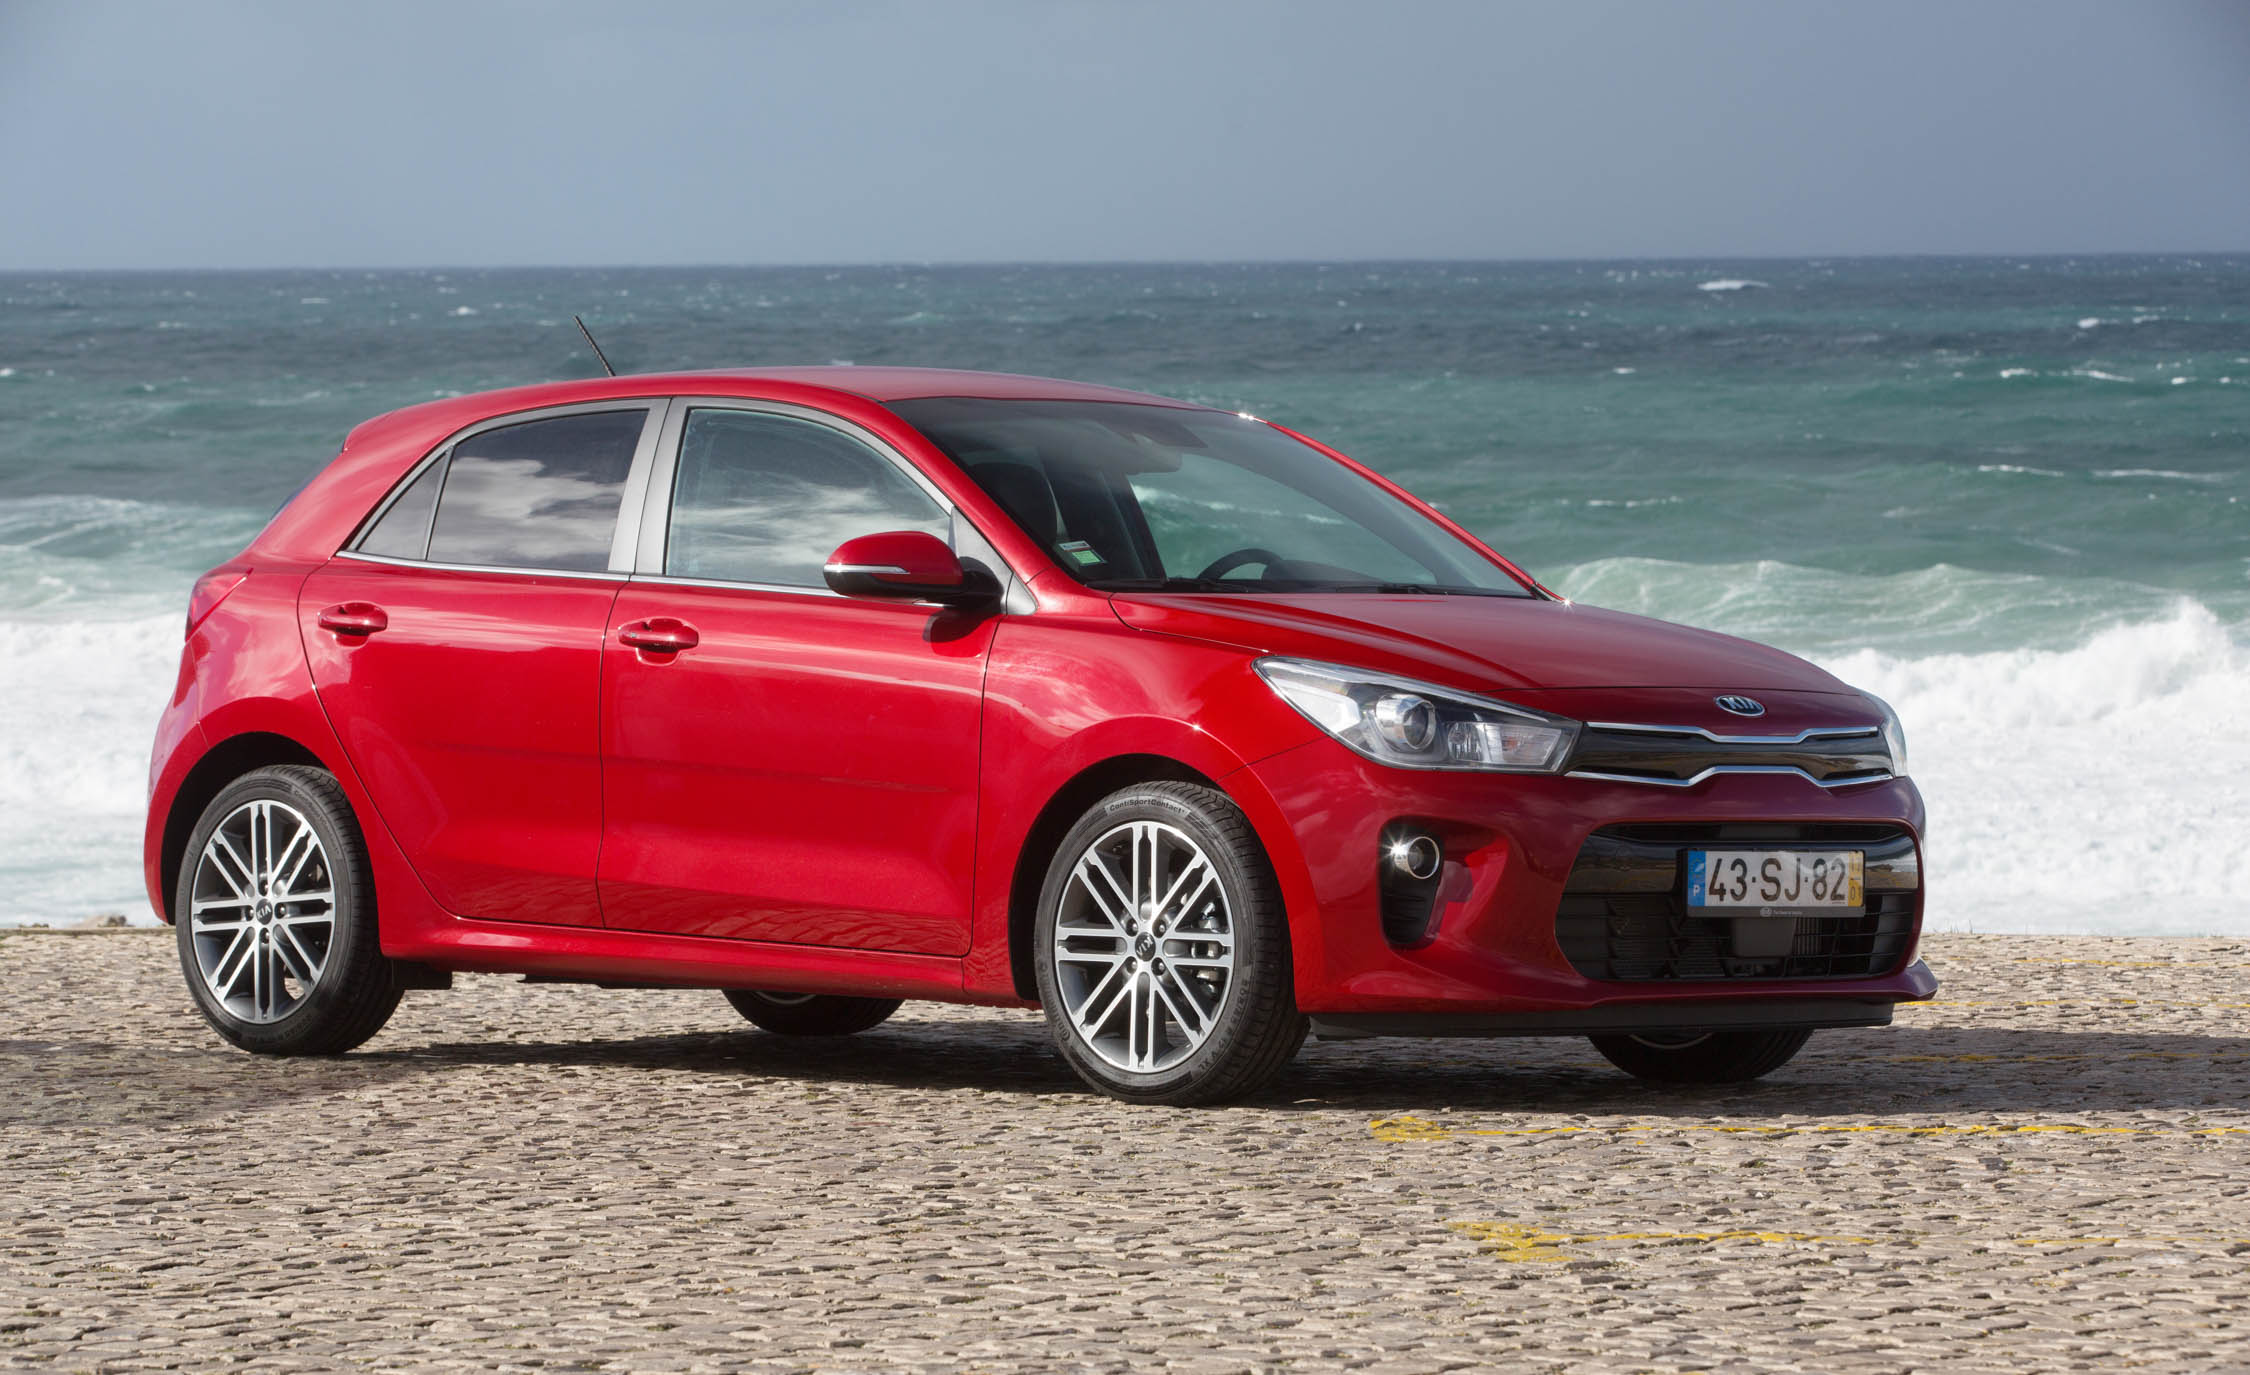 2018 Kia Rio Hatchback Red Exterior Side And Front (Photo 38 of 49)